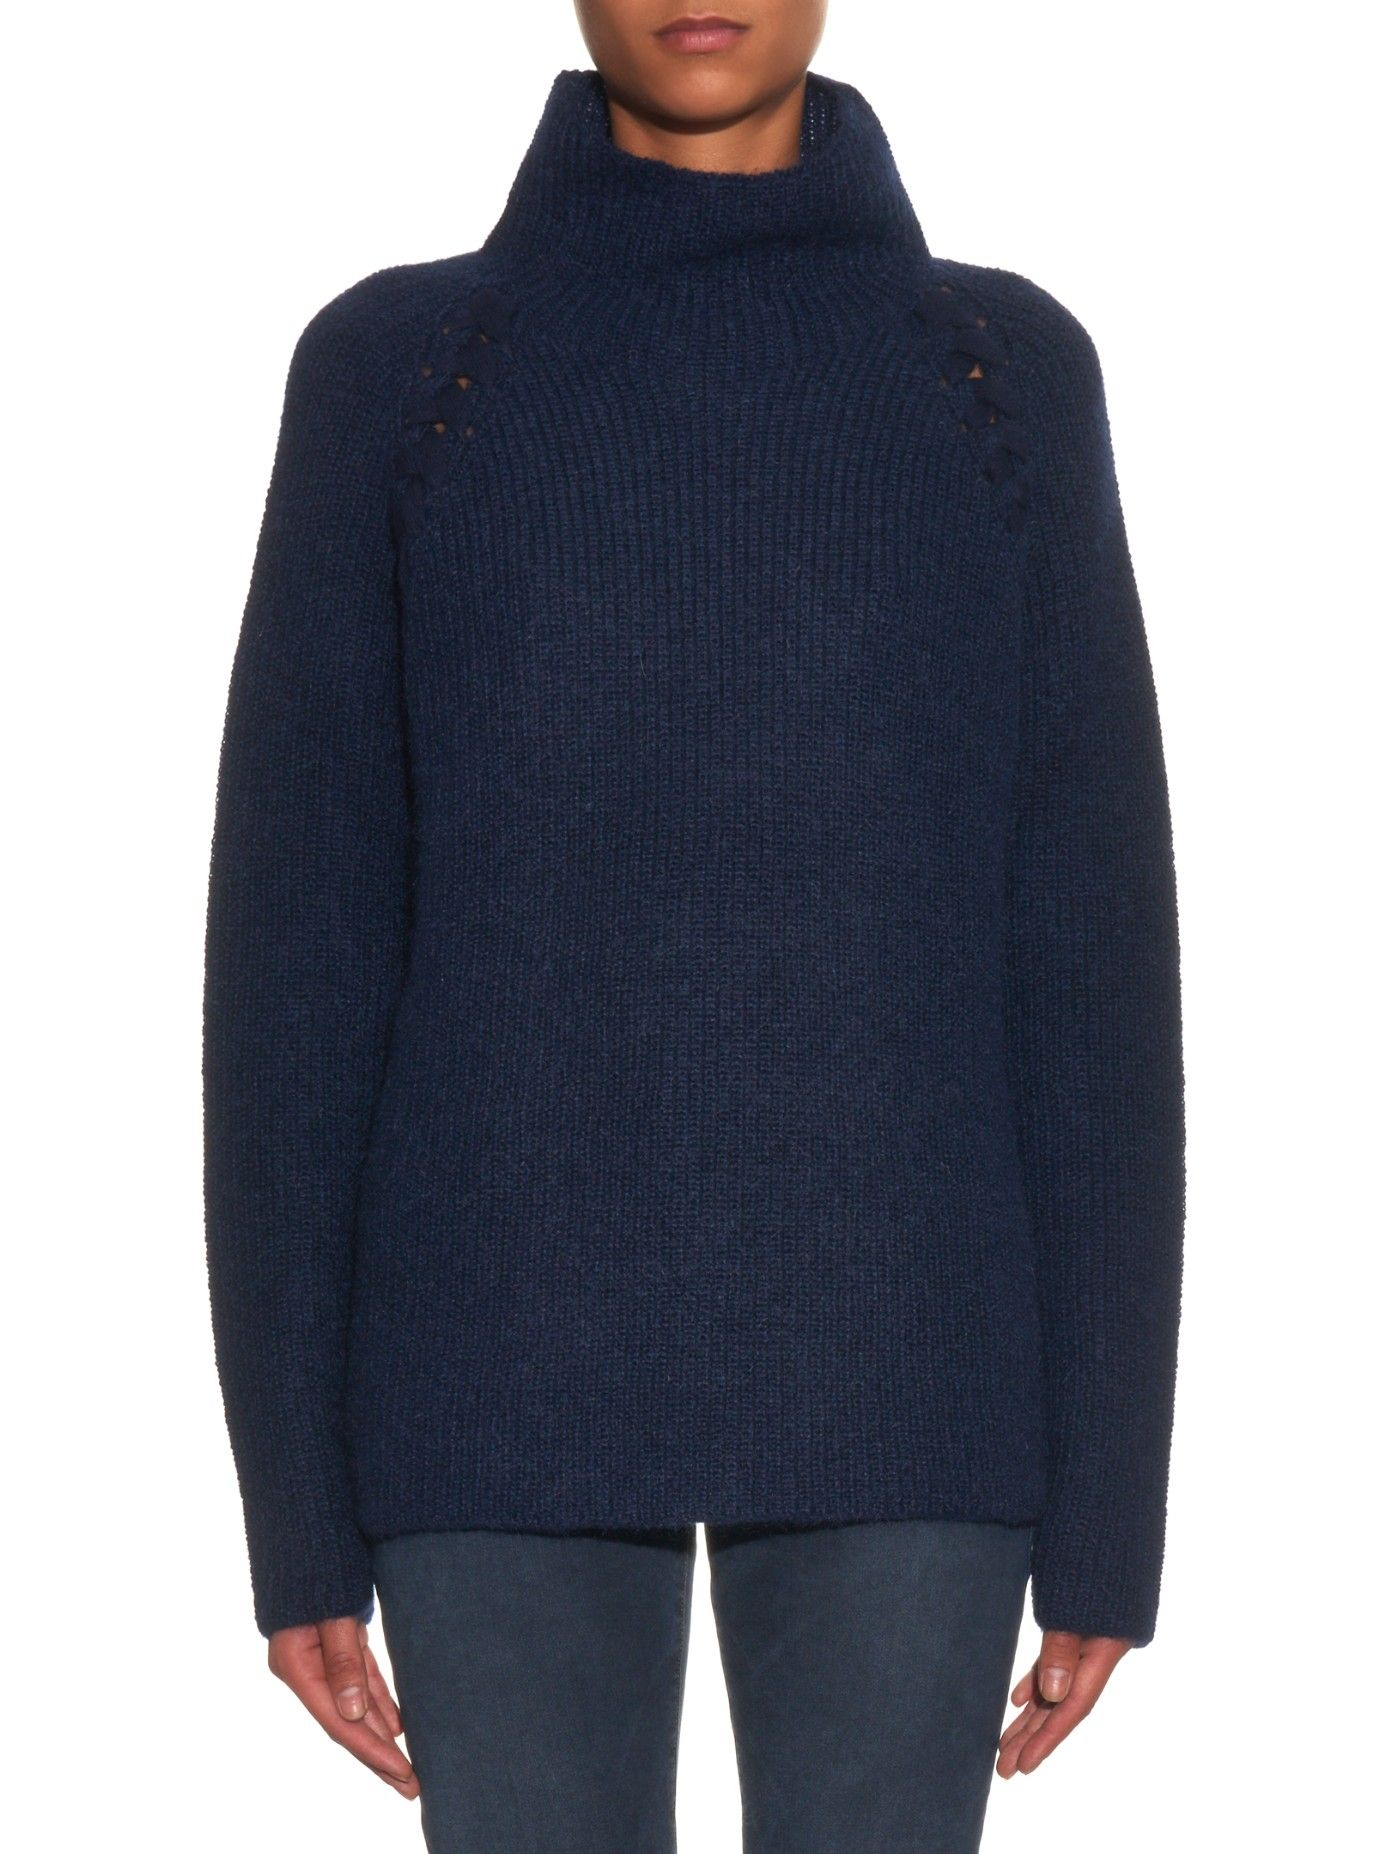 Dolby wool and mohair-blend sweater | Vanessa Bruno Athé | MATCHESFASHION.COM